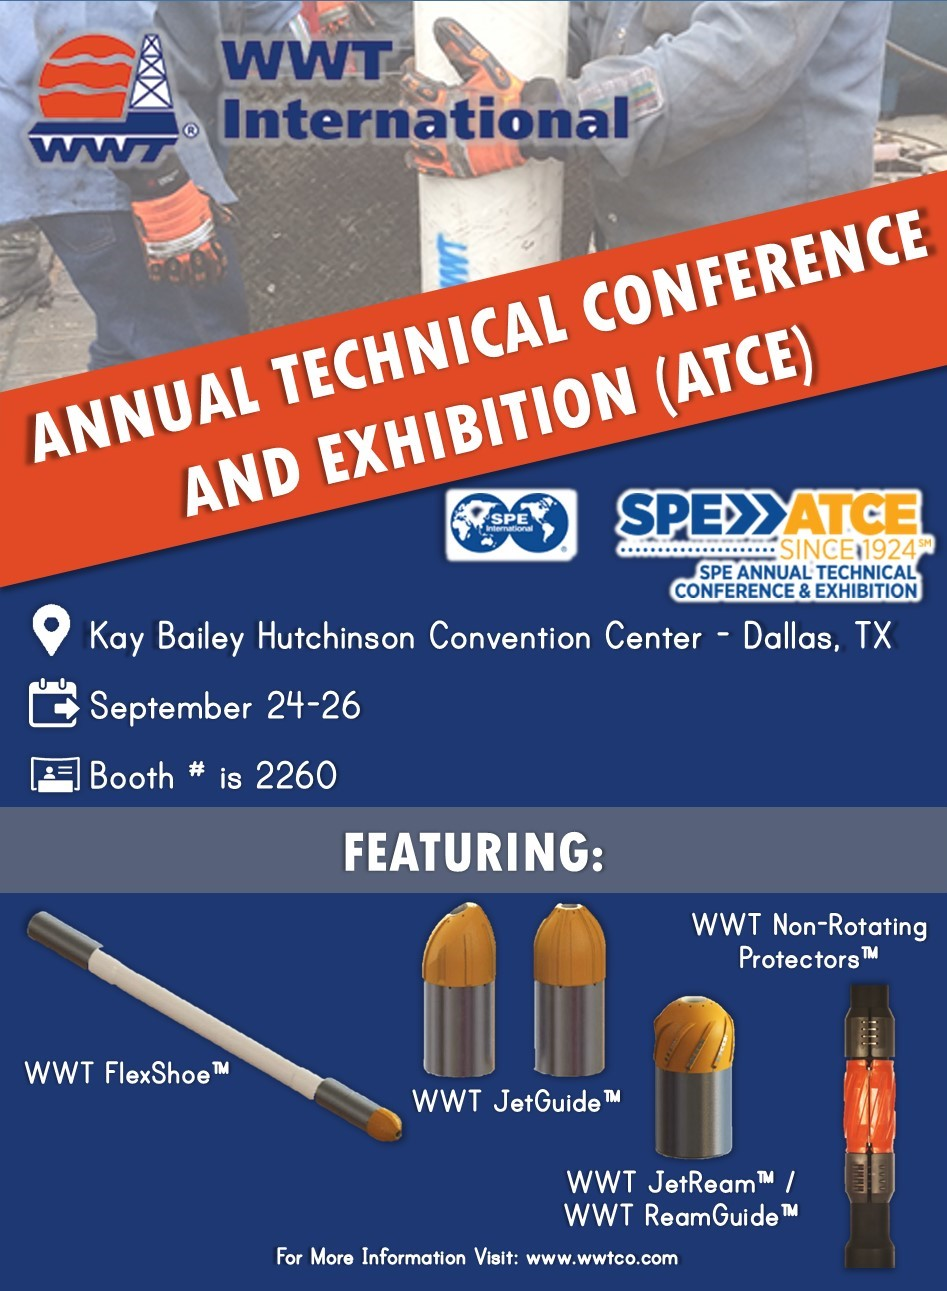 WWT International Exhibiting at the Annual Technical Conference and Exhibition (ATCE)